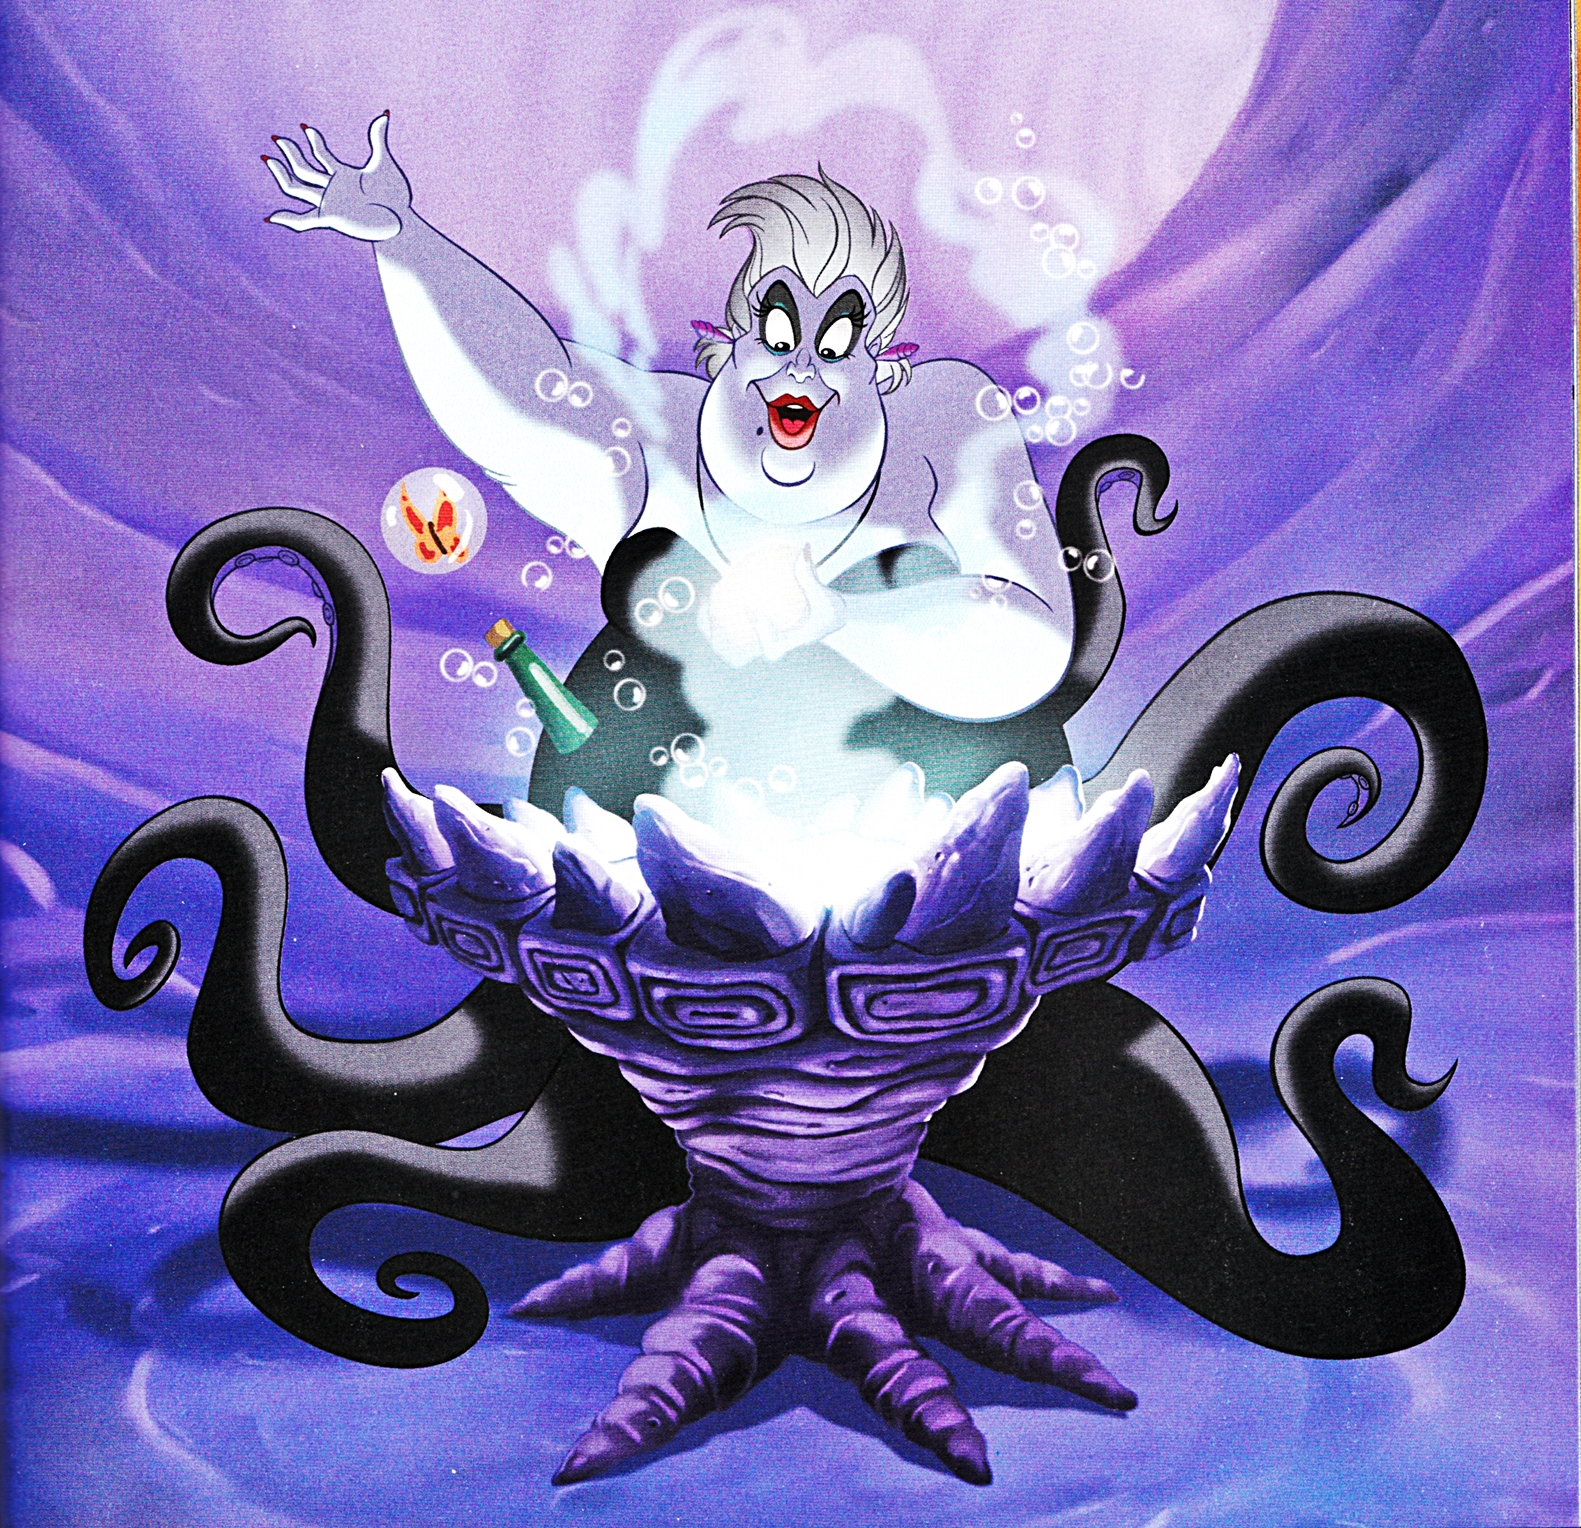 Ursula Disney Wiki FANDOM powered by Wikia 1581x1528